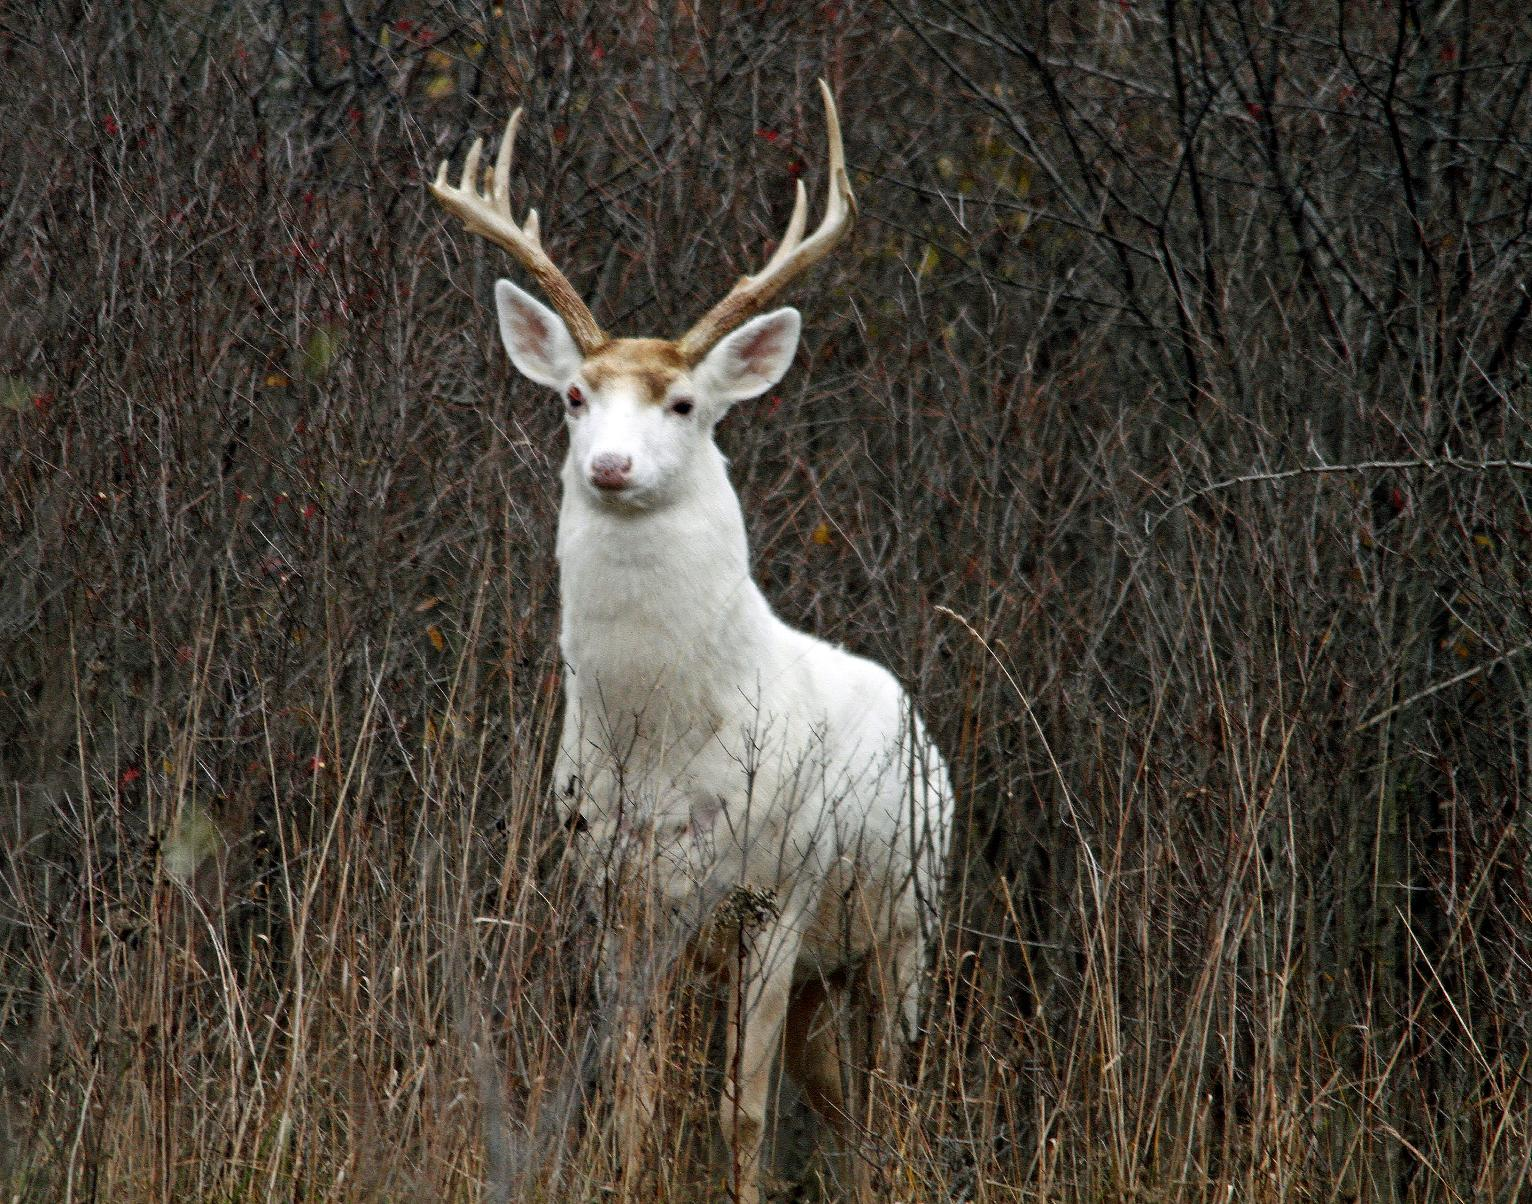 Future Uncertain For Rare White Deer At Former Weapons